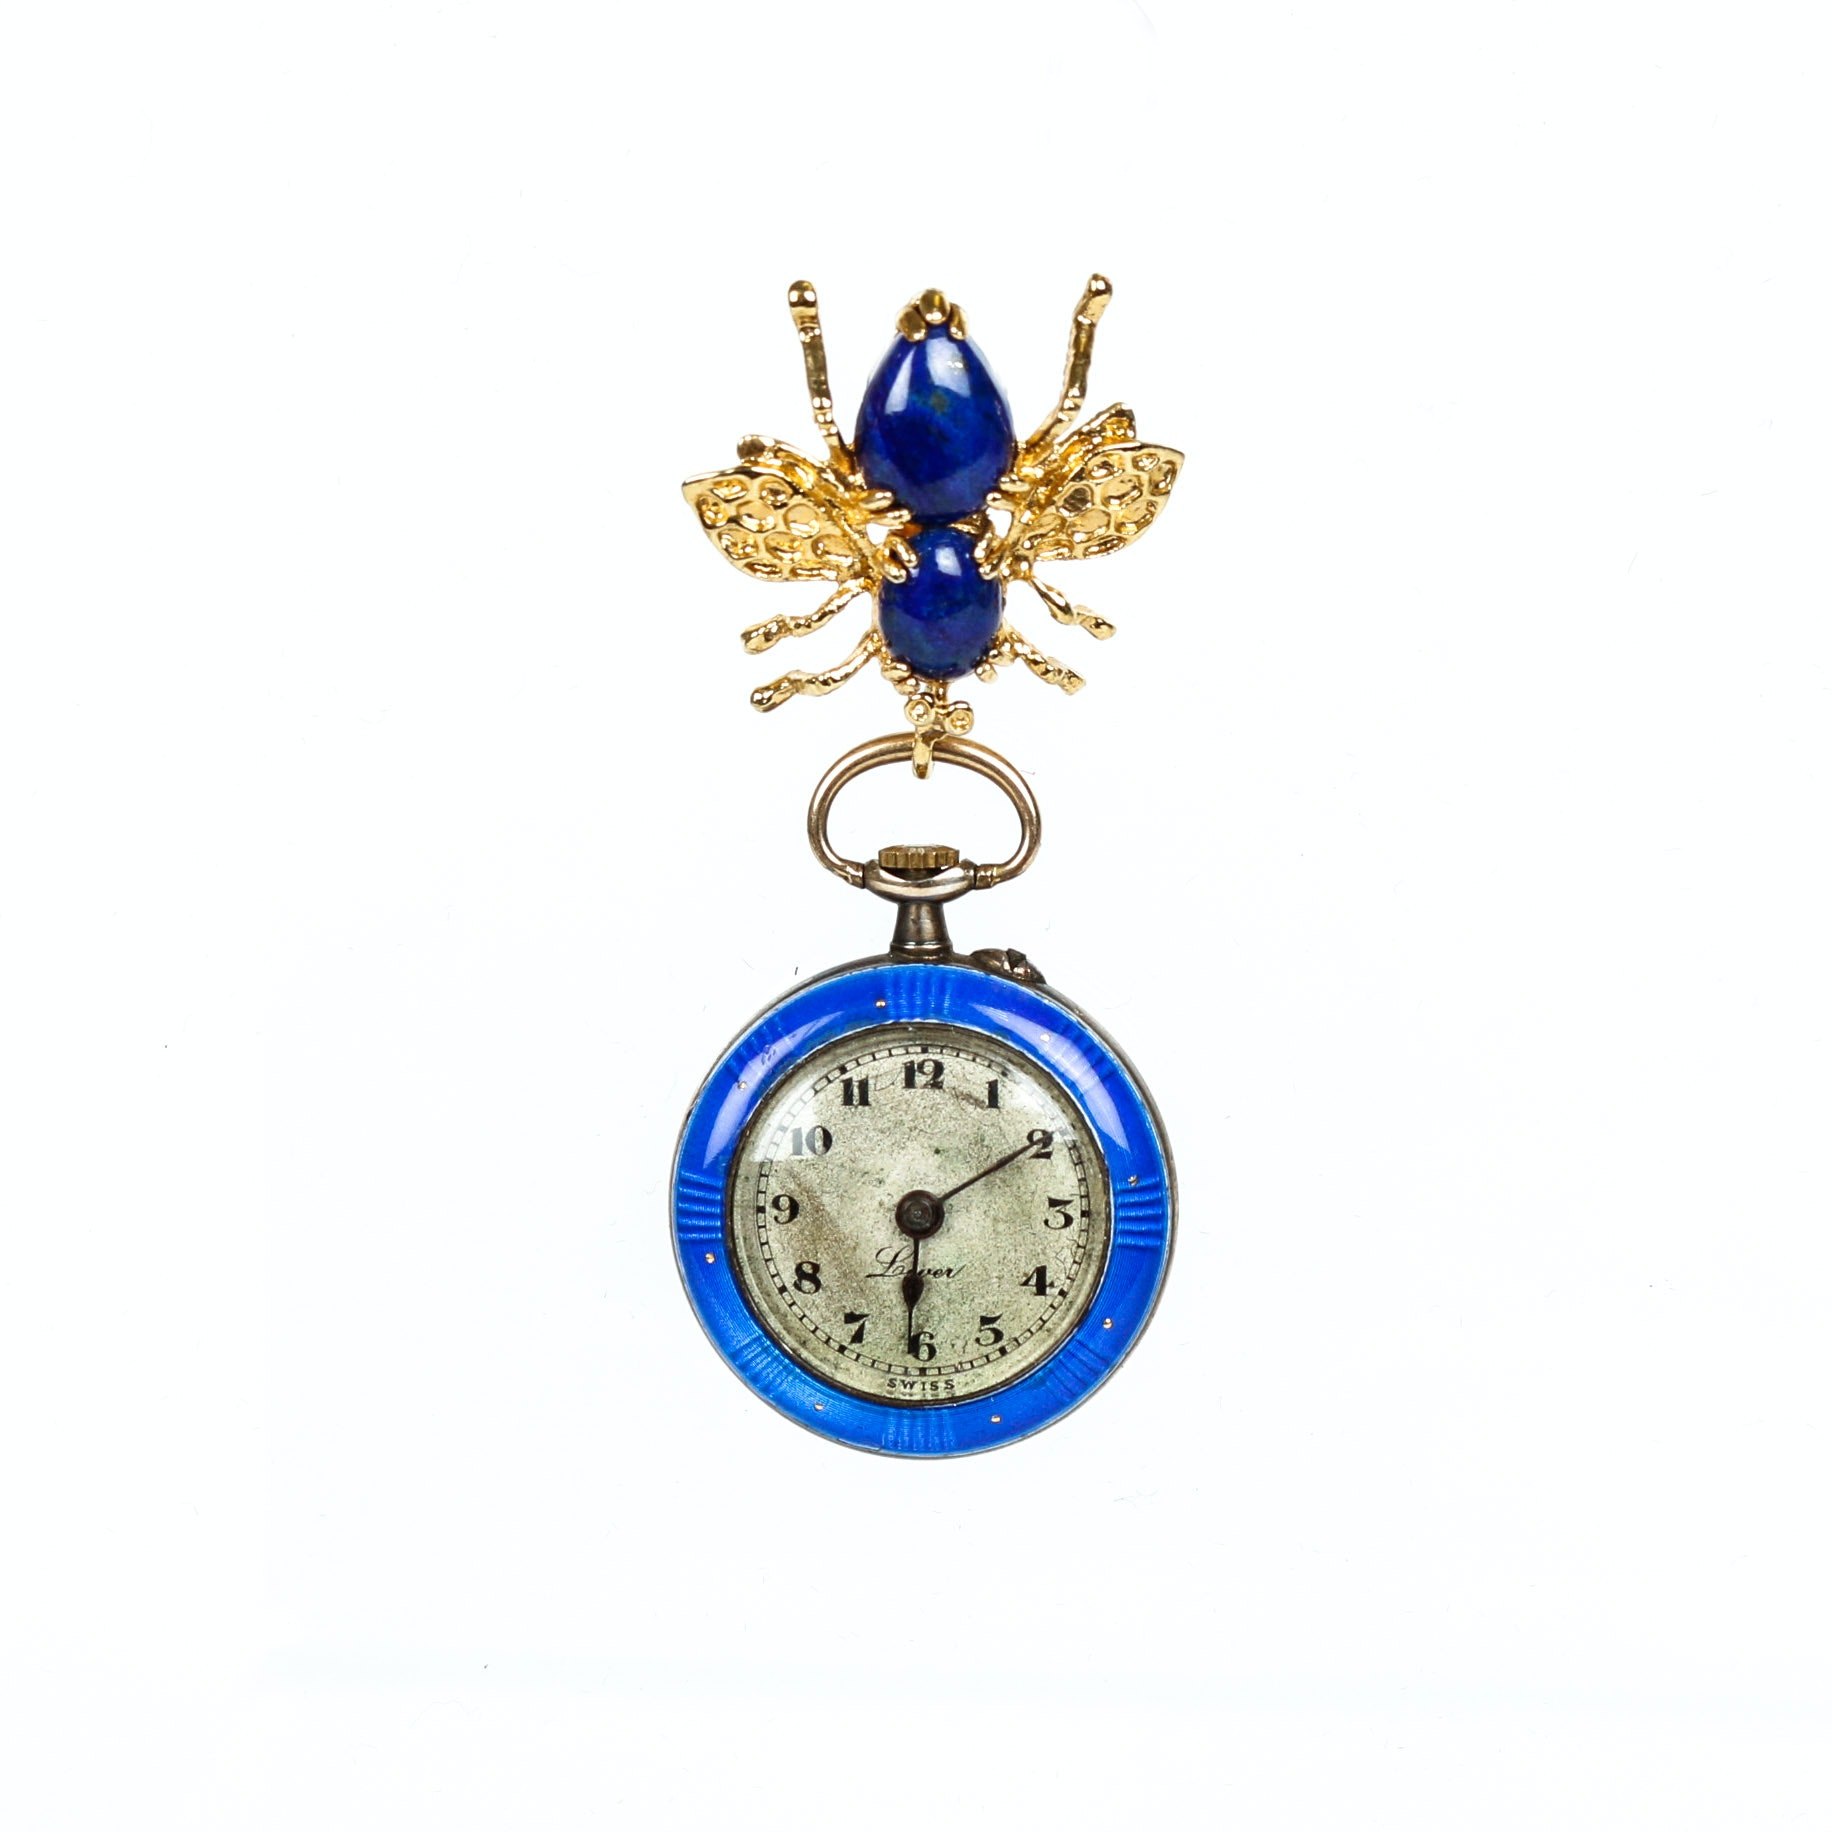 18K and Sterling Blue Enamel Women's Watch with Lapis Bee Pendant